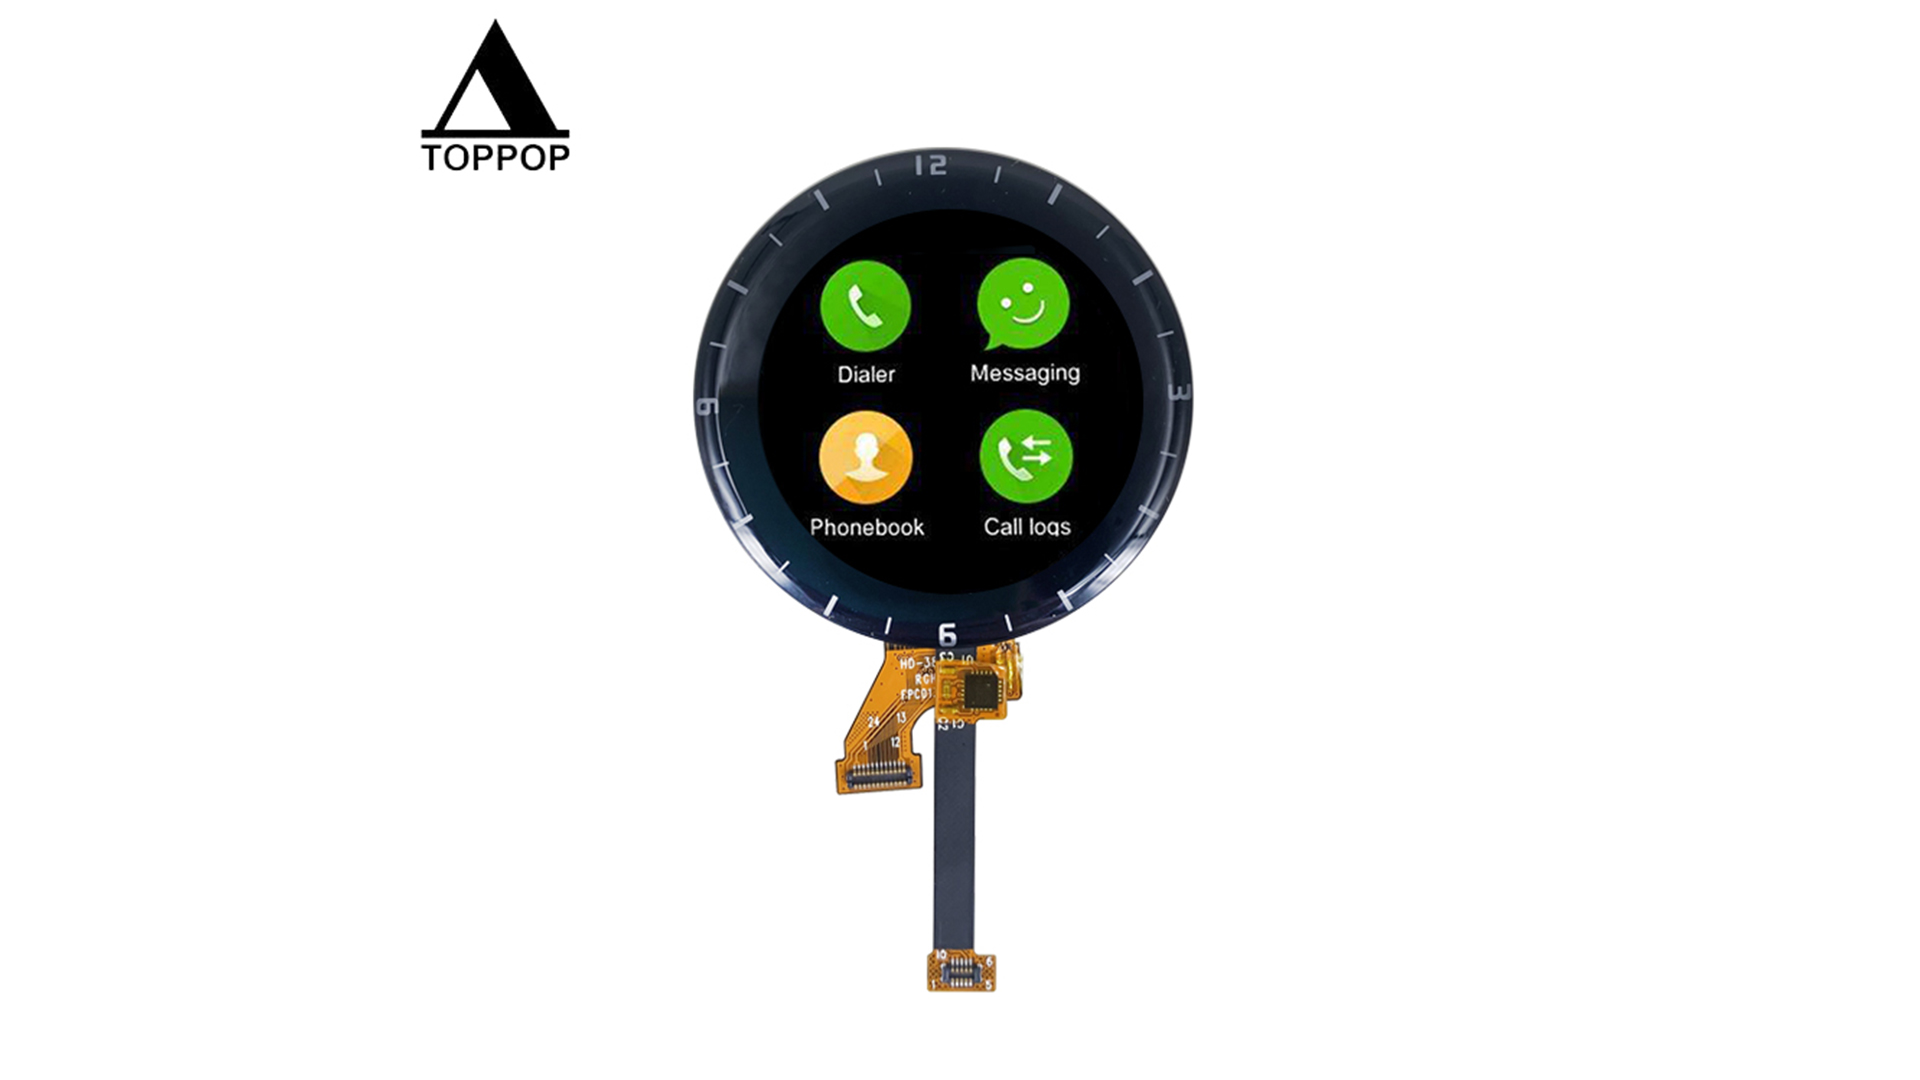 cheap 1.3 inch Round Watch LCD Touch Screen 240*240 IPS TFT LCD Display with Capacitive Touch Panel for Smart Watch LCD Module Factory Support Customization OEM ODM Manufacturer toppoplcd